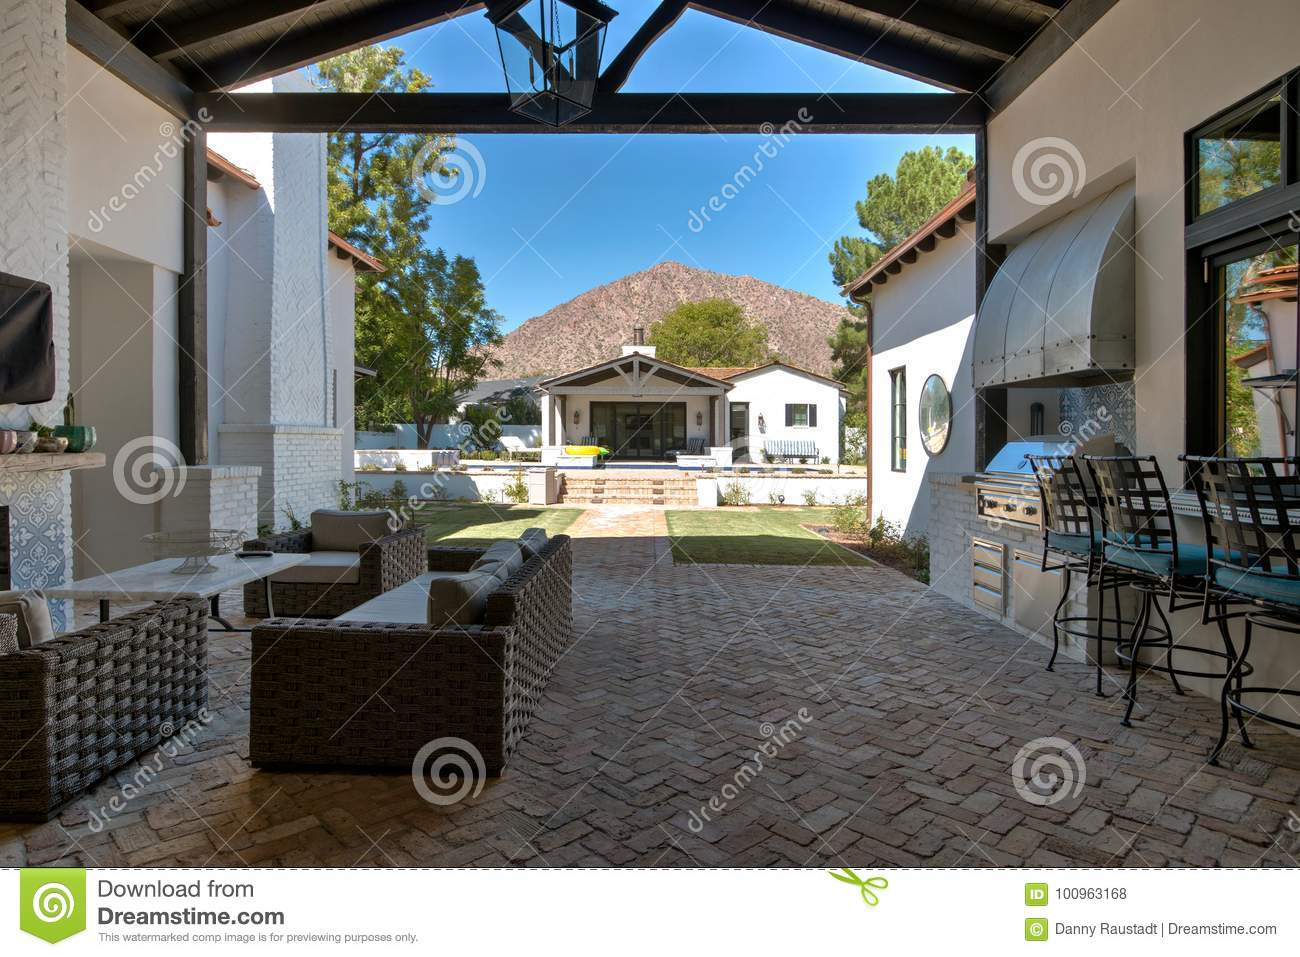 Huge mansion home sliding glass doors open to a large outdoor patio with a barbeque grill bar fireplaces and big screen tv